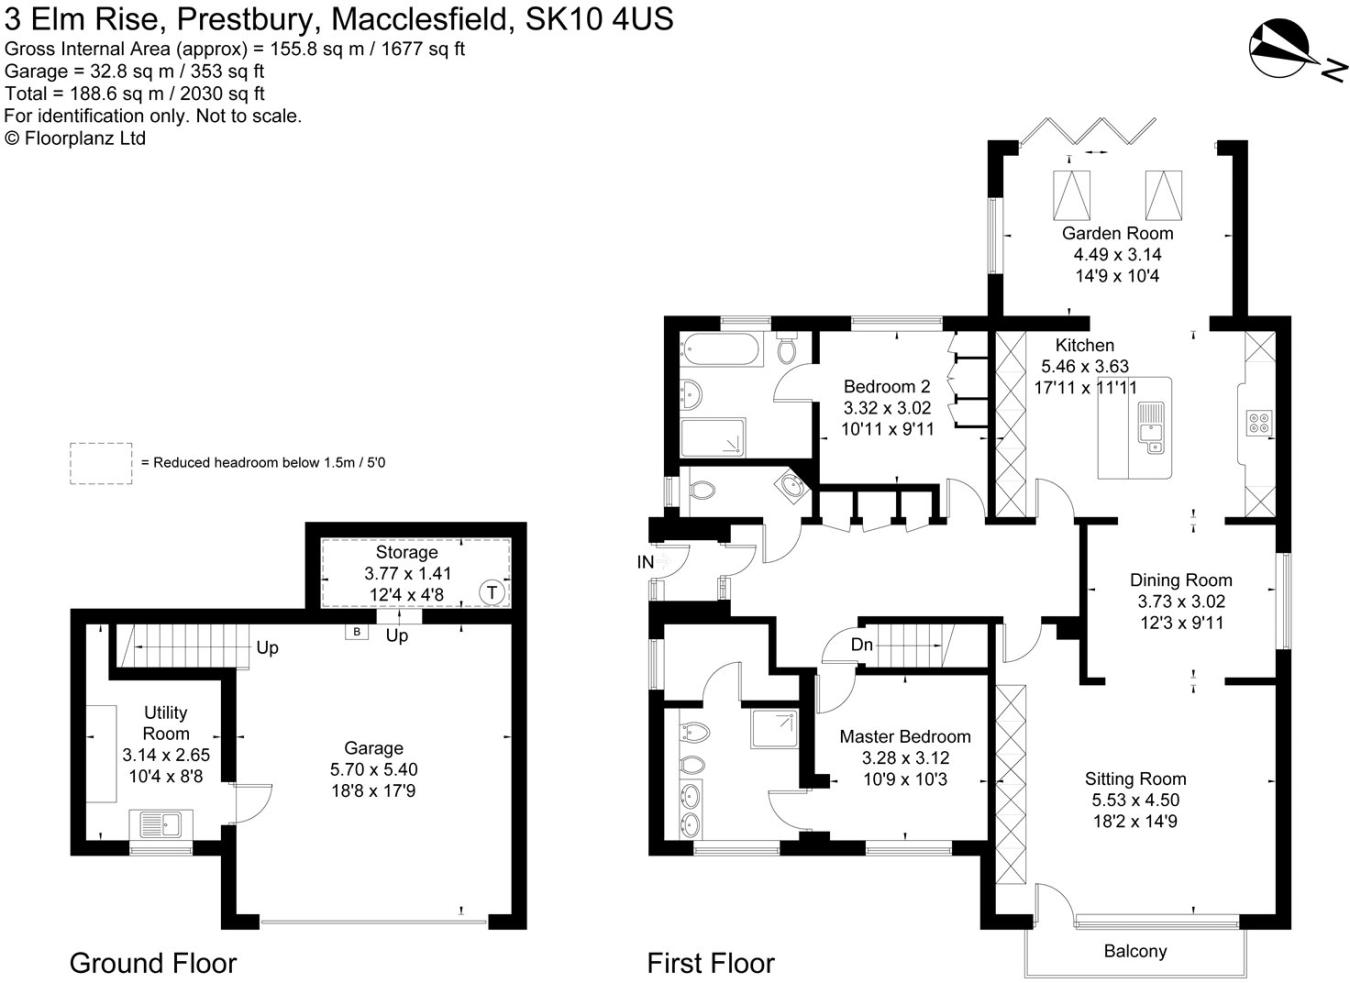 2 Bedroom Bungalow For Sale In Elm Rise Prestbury Macclesfield 4 Light Wiring Diagram Cheshire Sk10